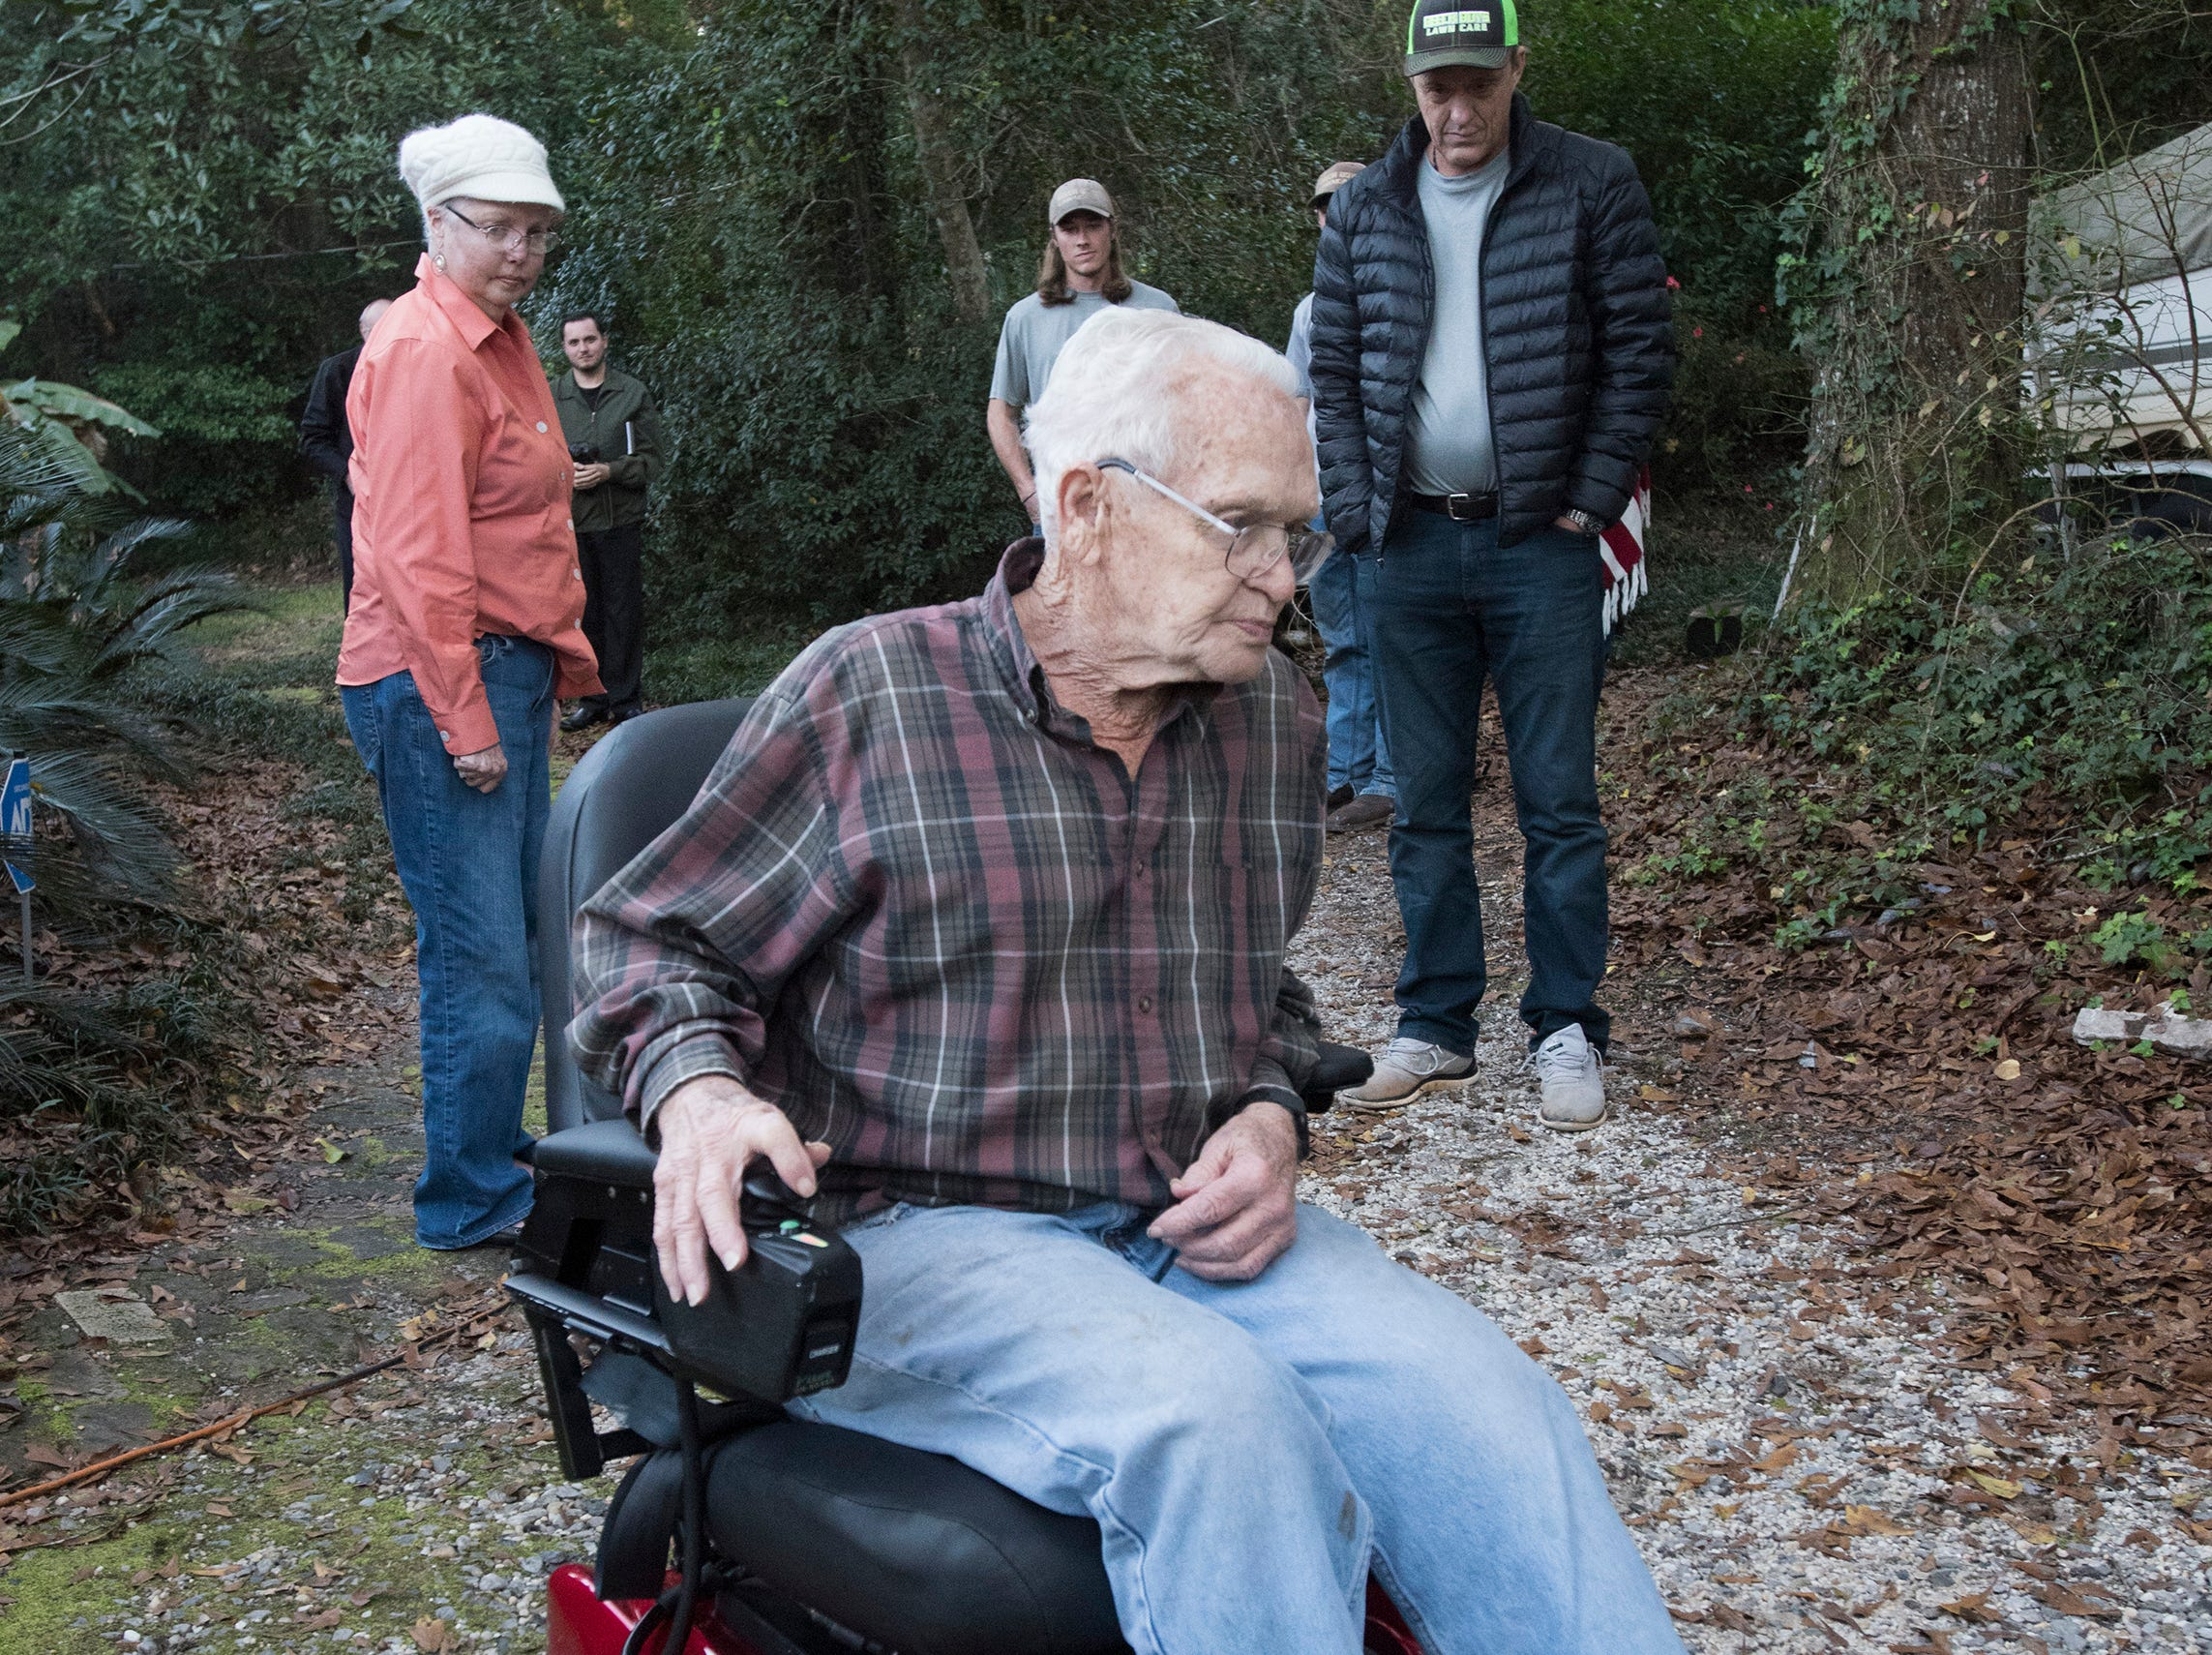 East Milton resident, Jim Blazier, takes his new motorized chair for a spin outside his home on Friday, Jan. 4, 2019, while his wife Phyllis, and Rick Beech look on.  Blazier and his wife received the restored chair as a gift from Rick Beech, the owner of Beech Boys Lawn Care.